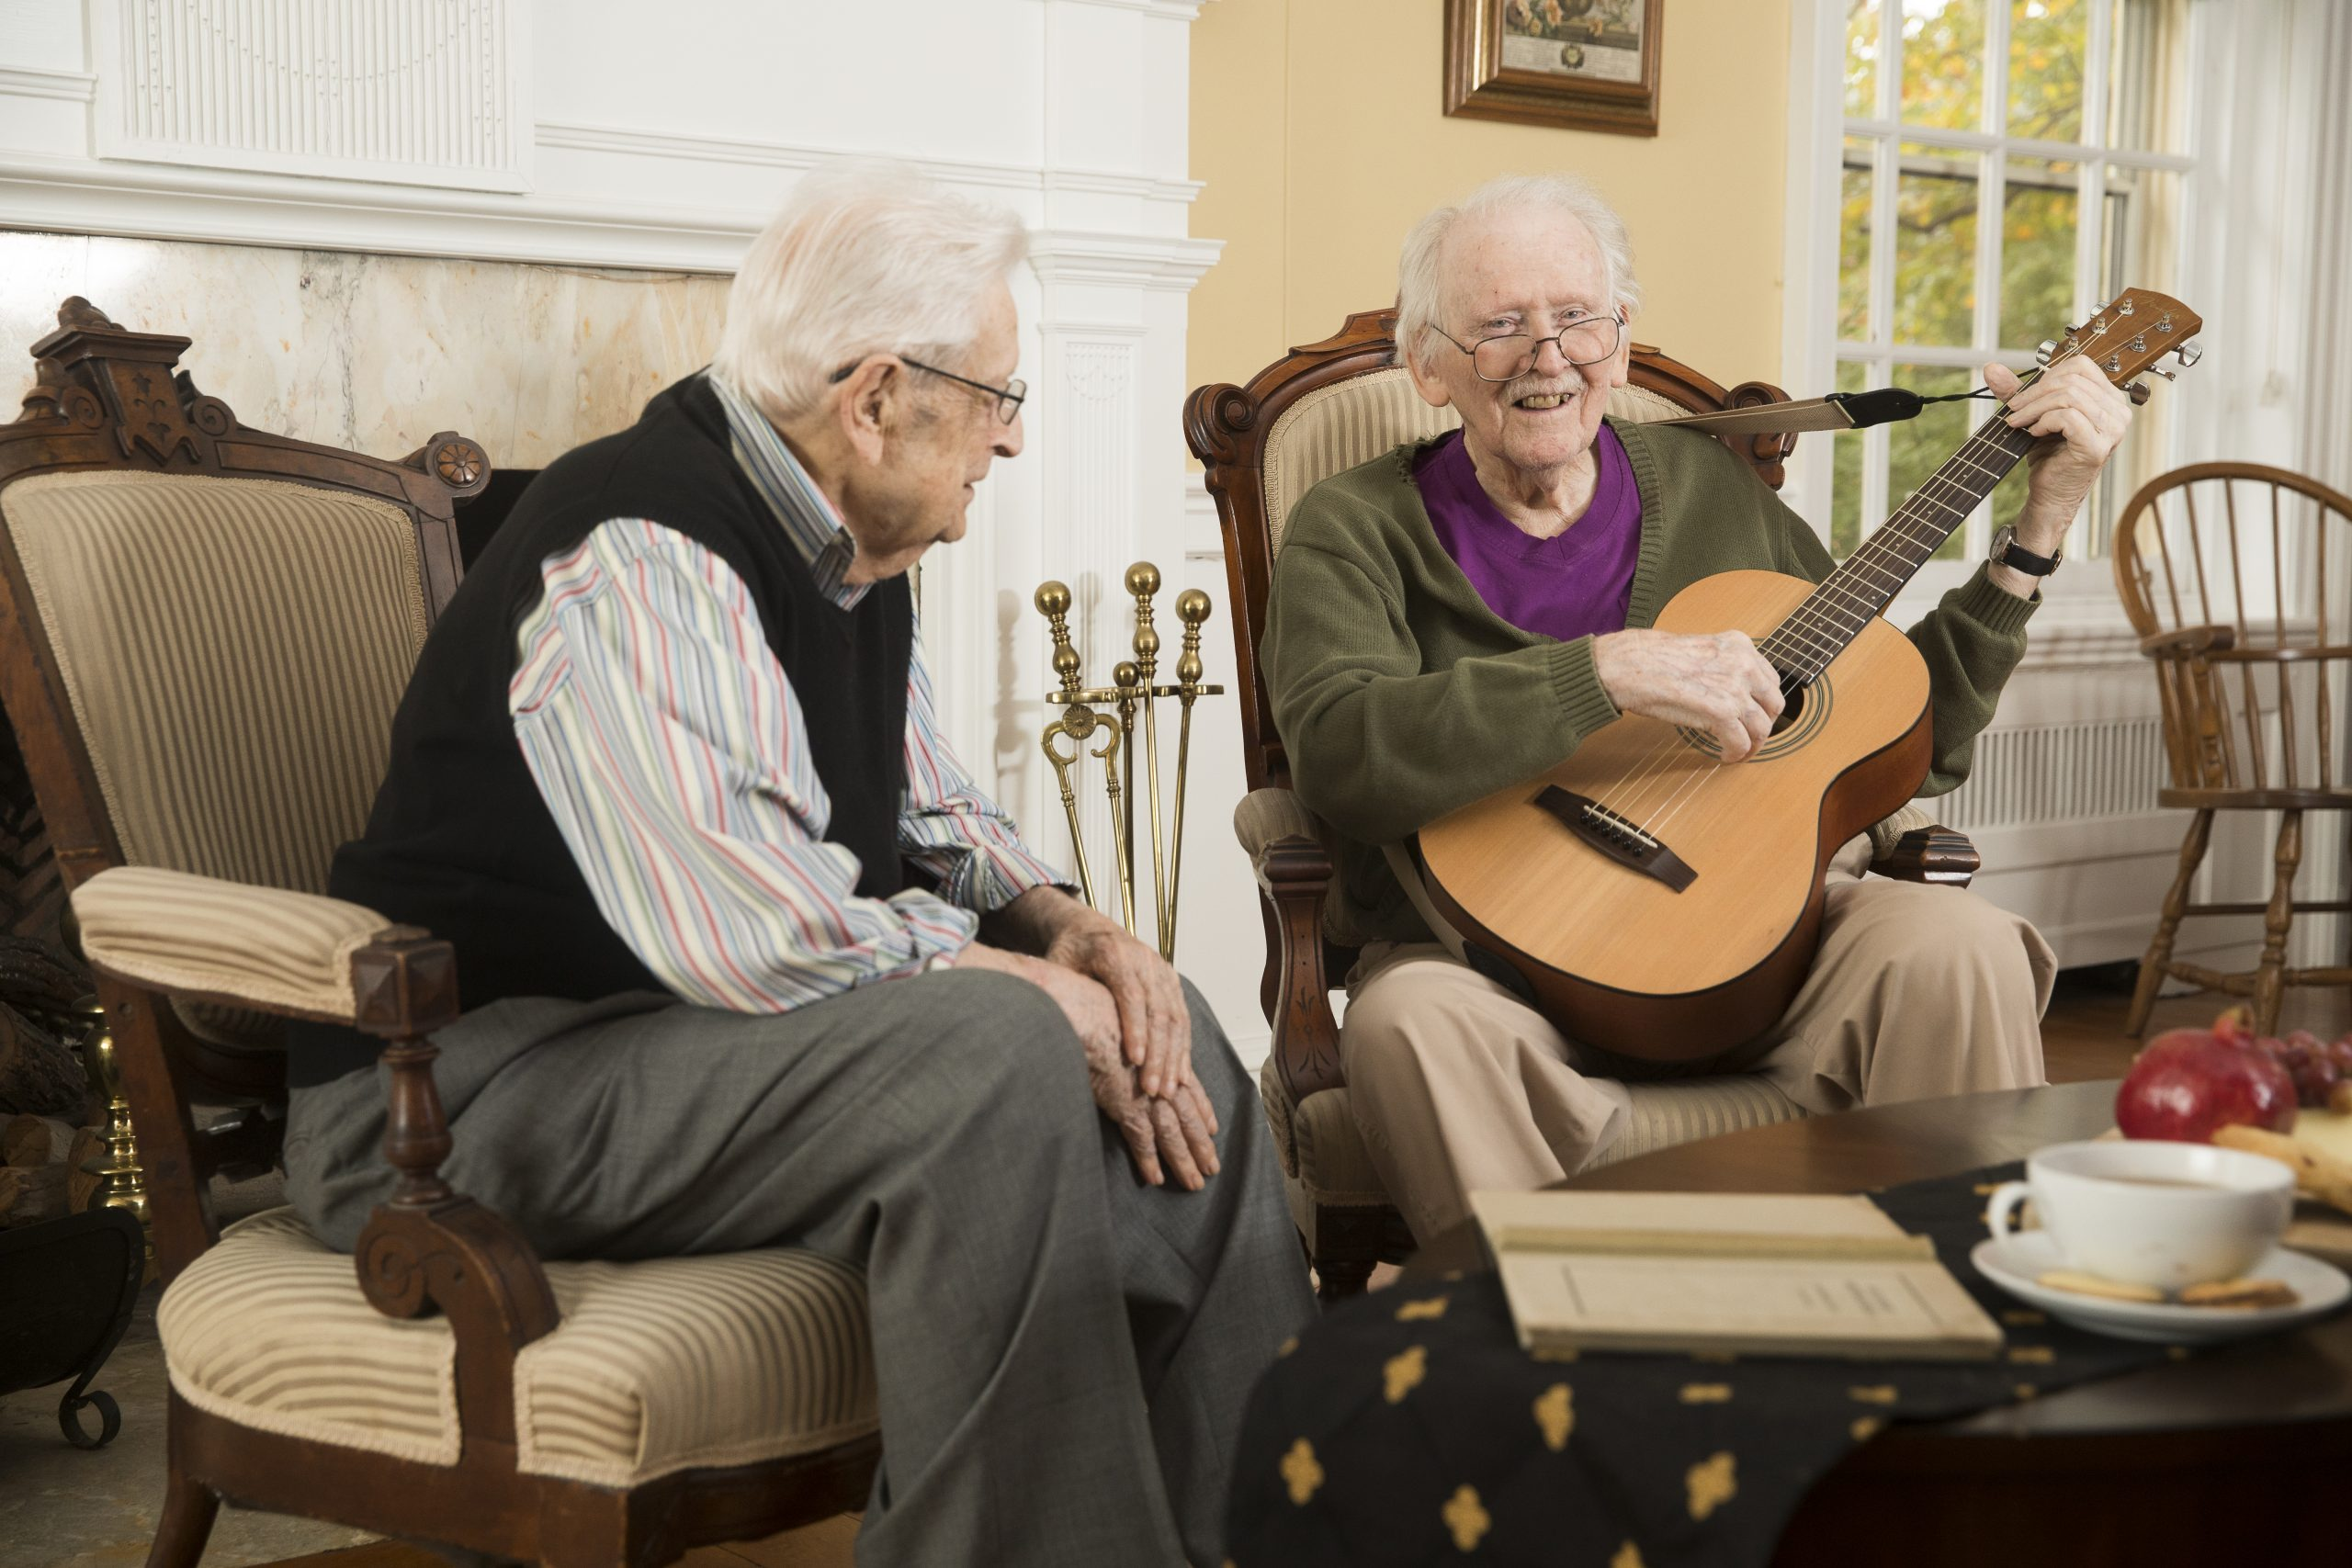 Male resident of The Hickman playing the guitar for another resident.